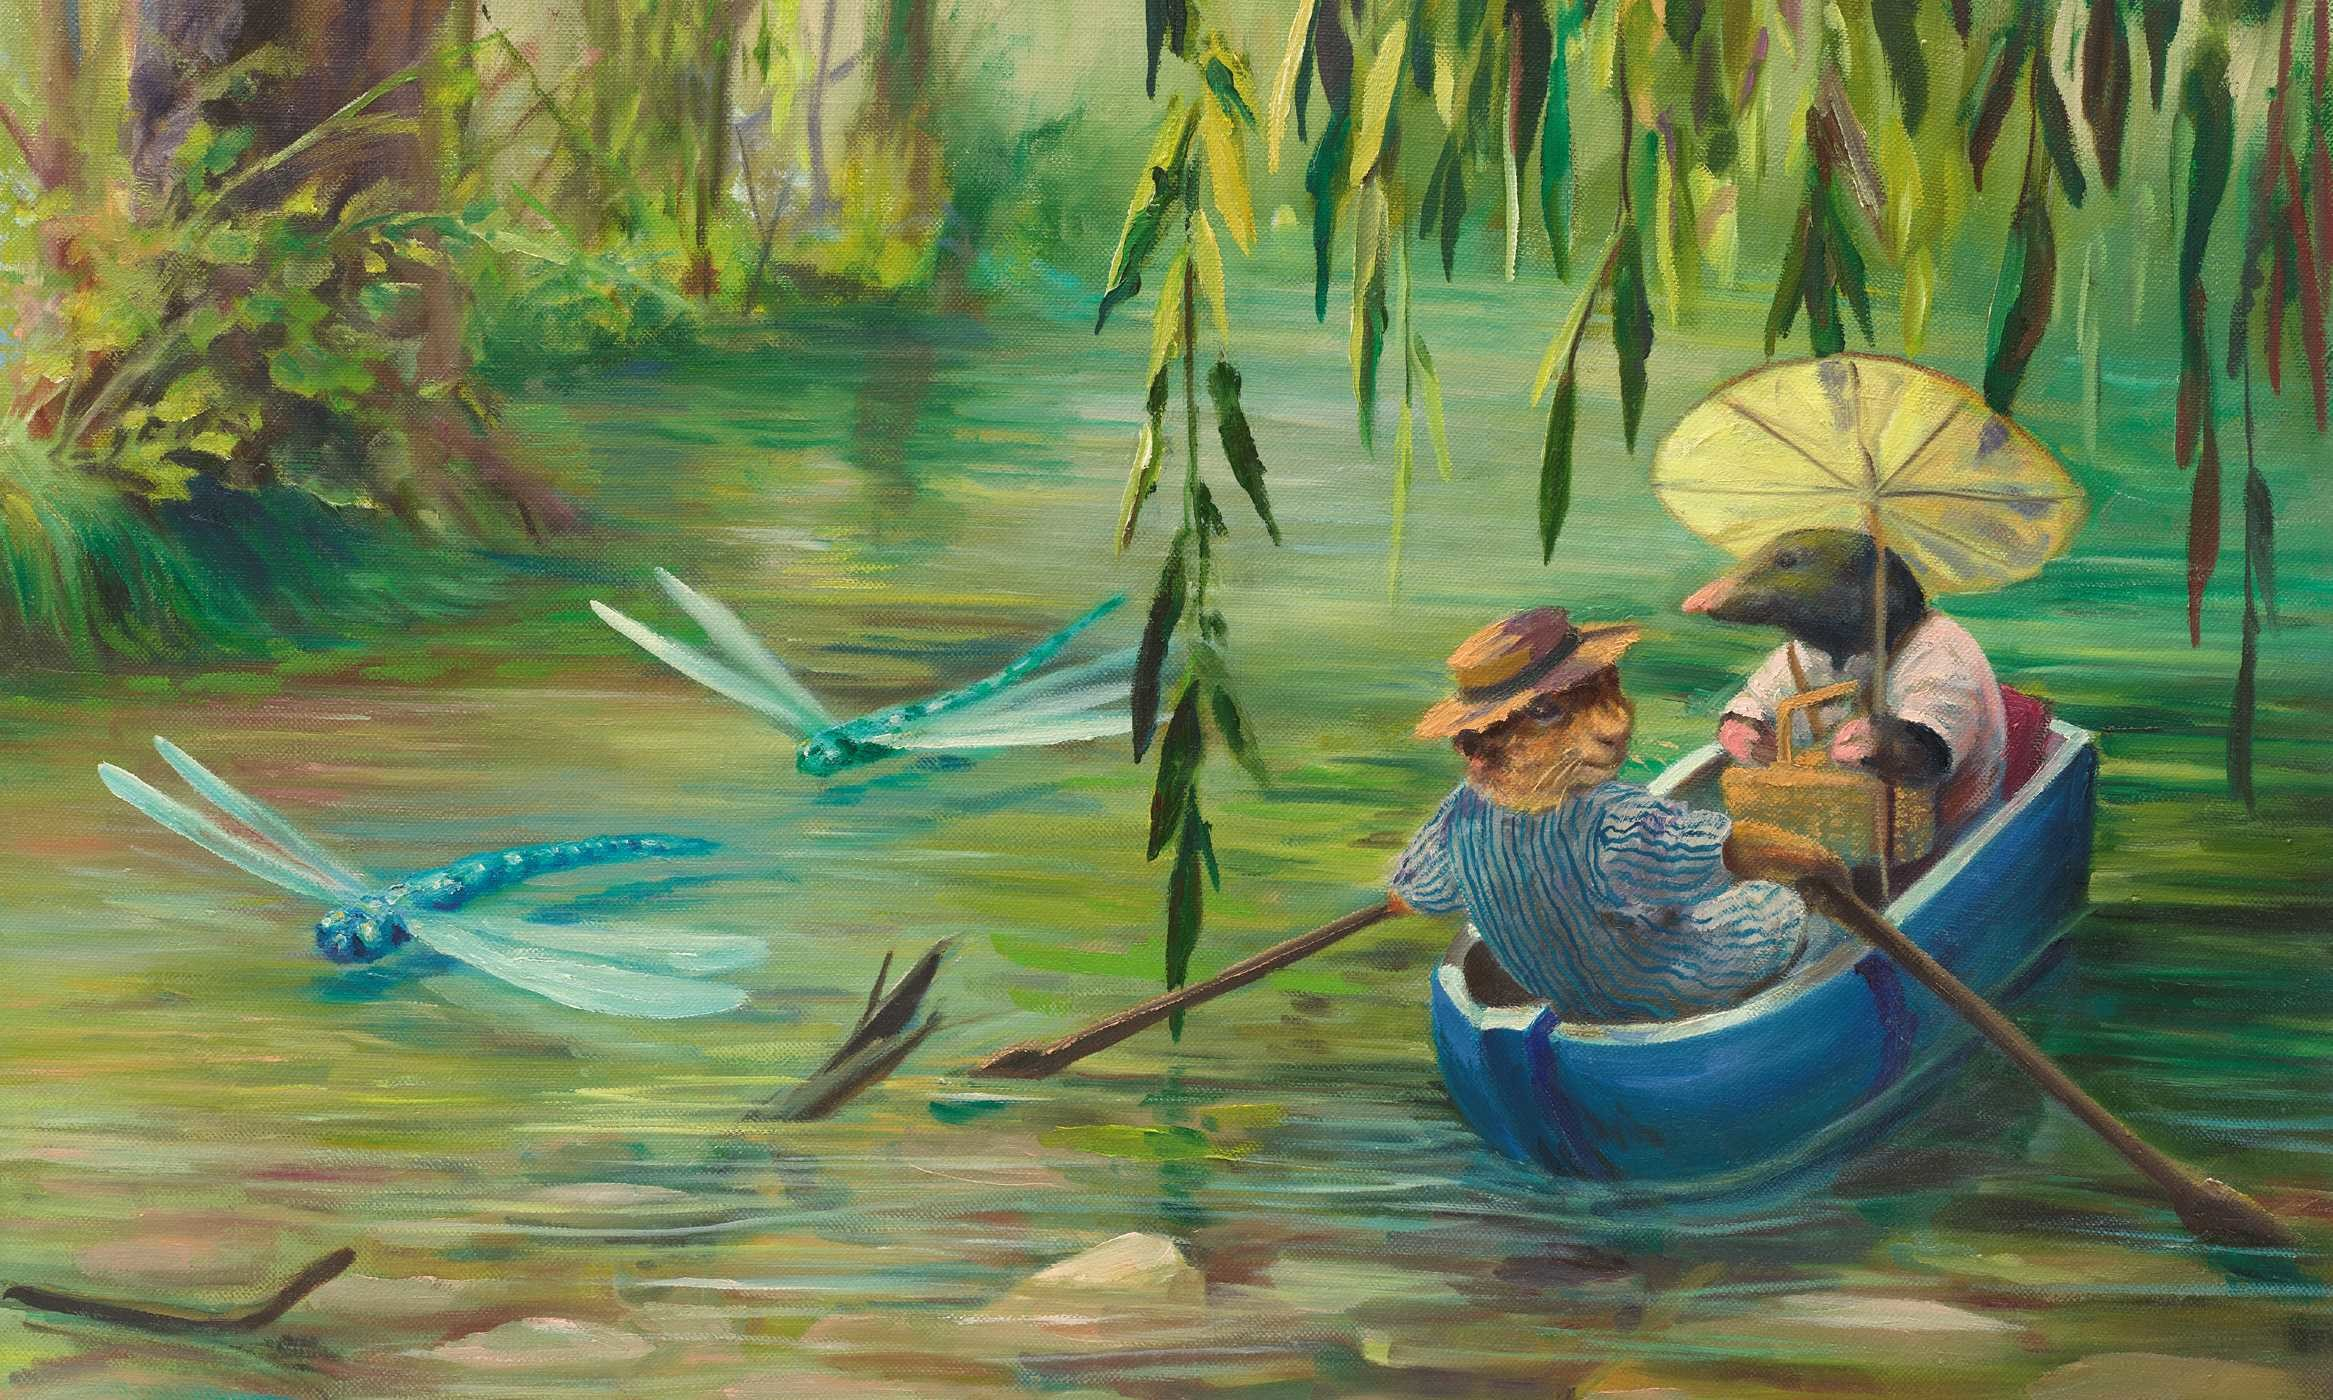 Kids Animal Wallpaper The Wind In The Willows Book By Kenneth Grahame